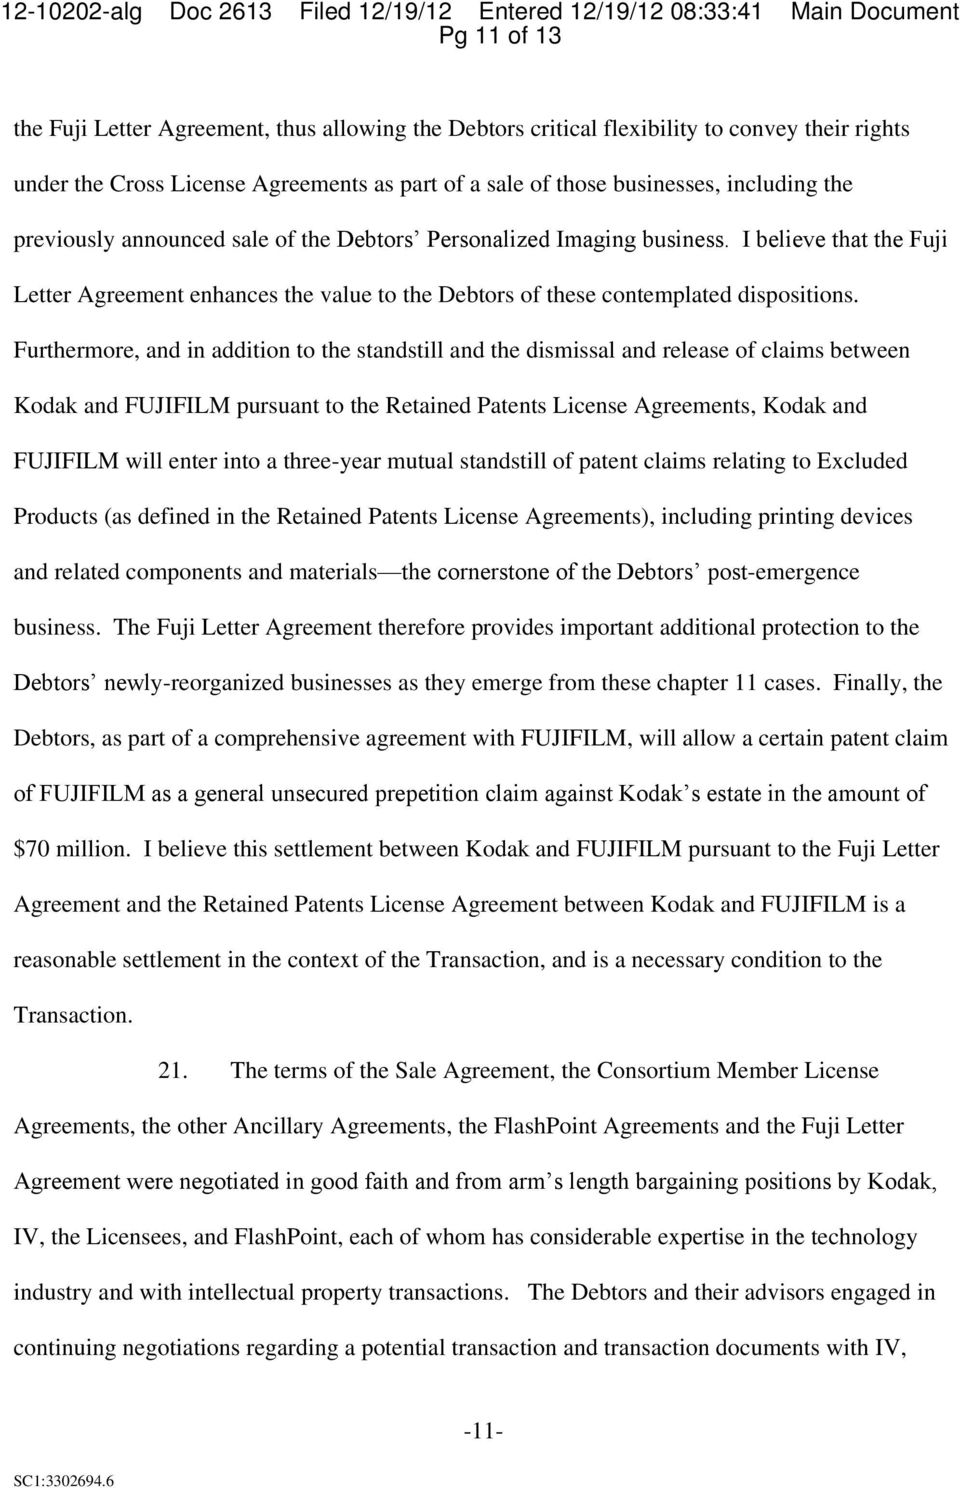 Furthermore, and in addition to the standstill and the dismissal and release of claims between Kodak and FUJIFILM pursuant to the Retained Patents License Agreements, Kodak and FUJIFILM will enter